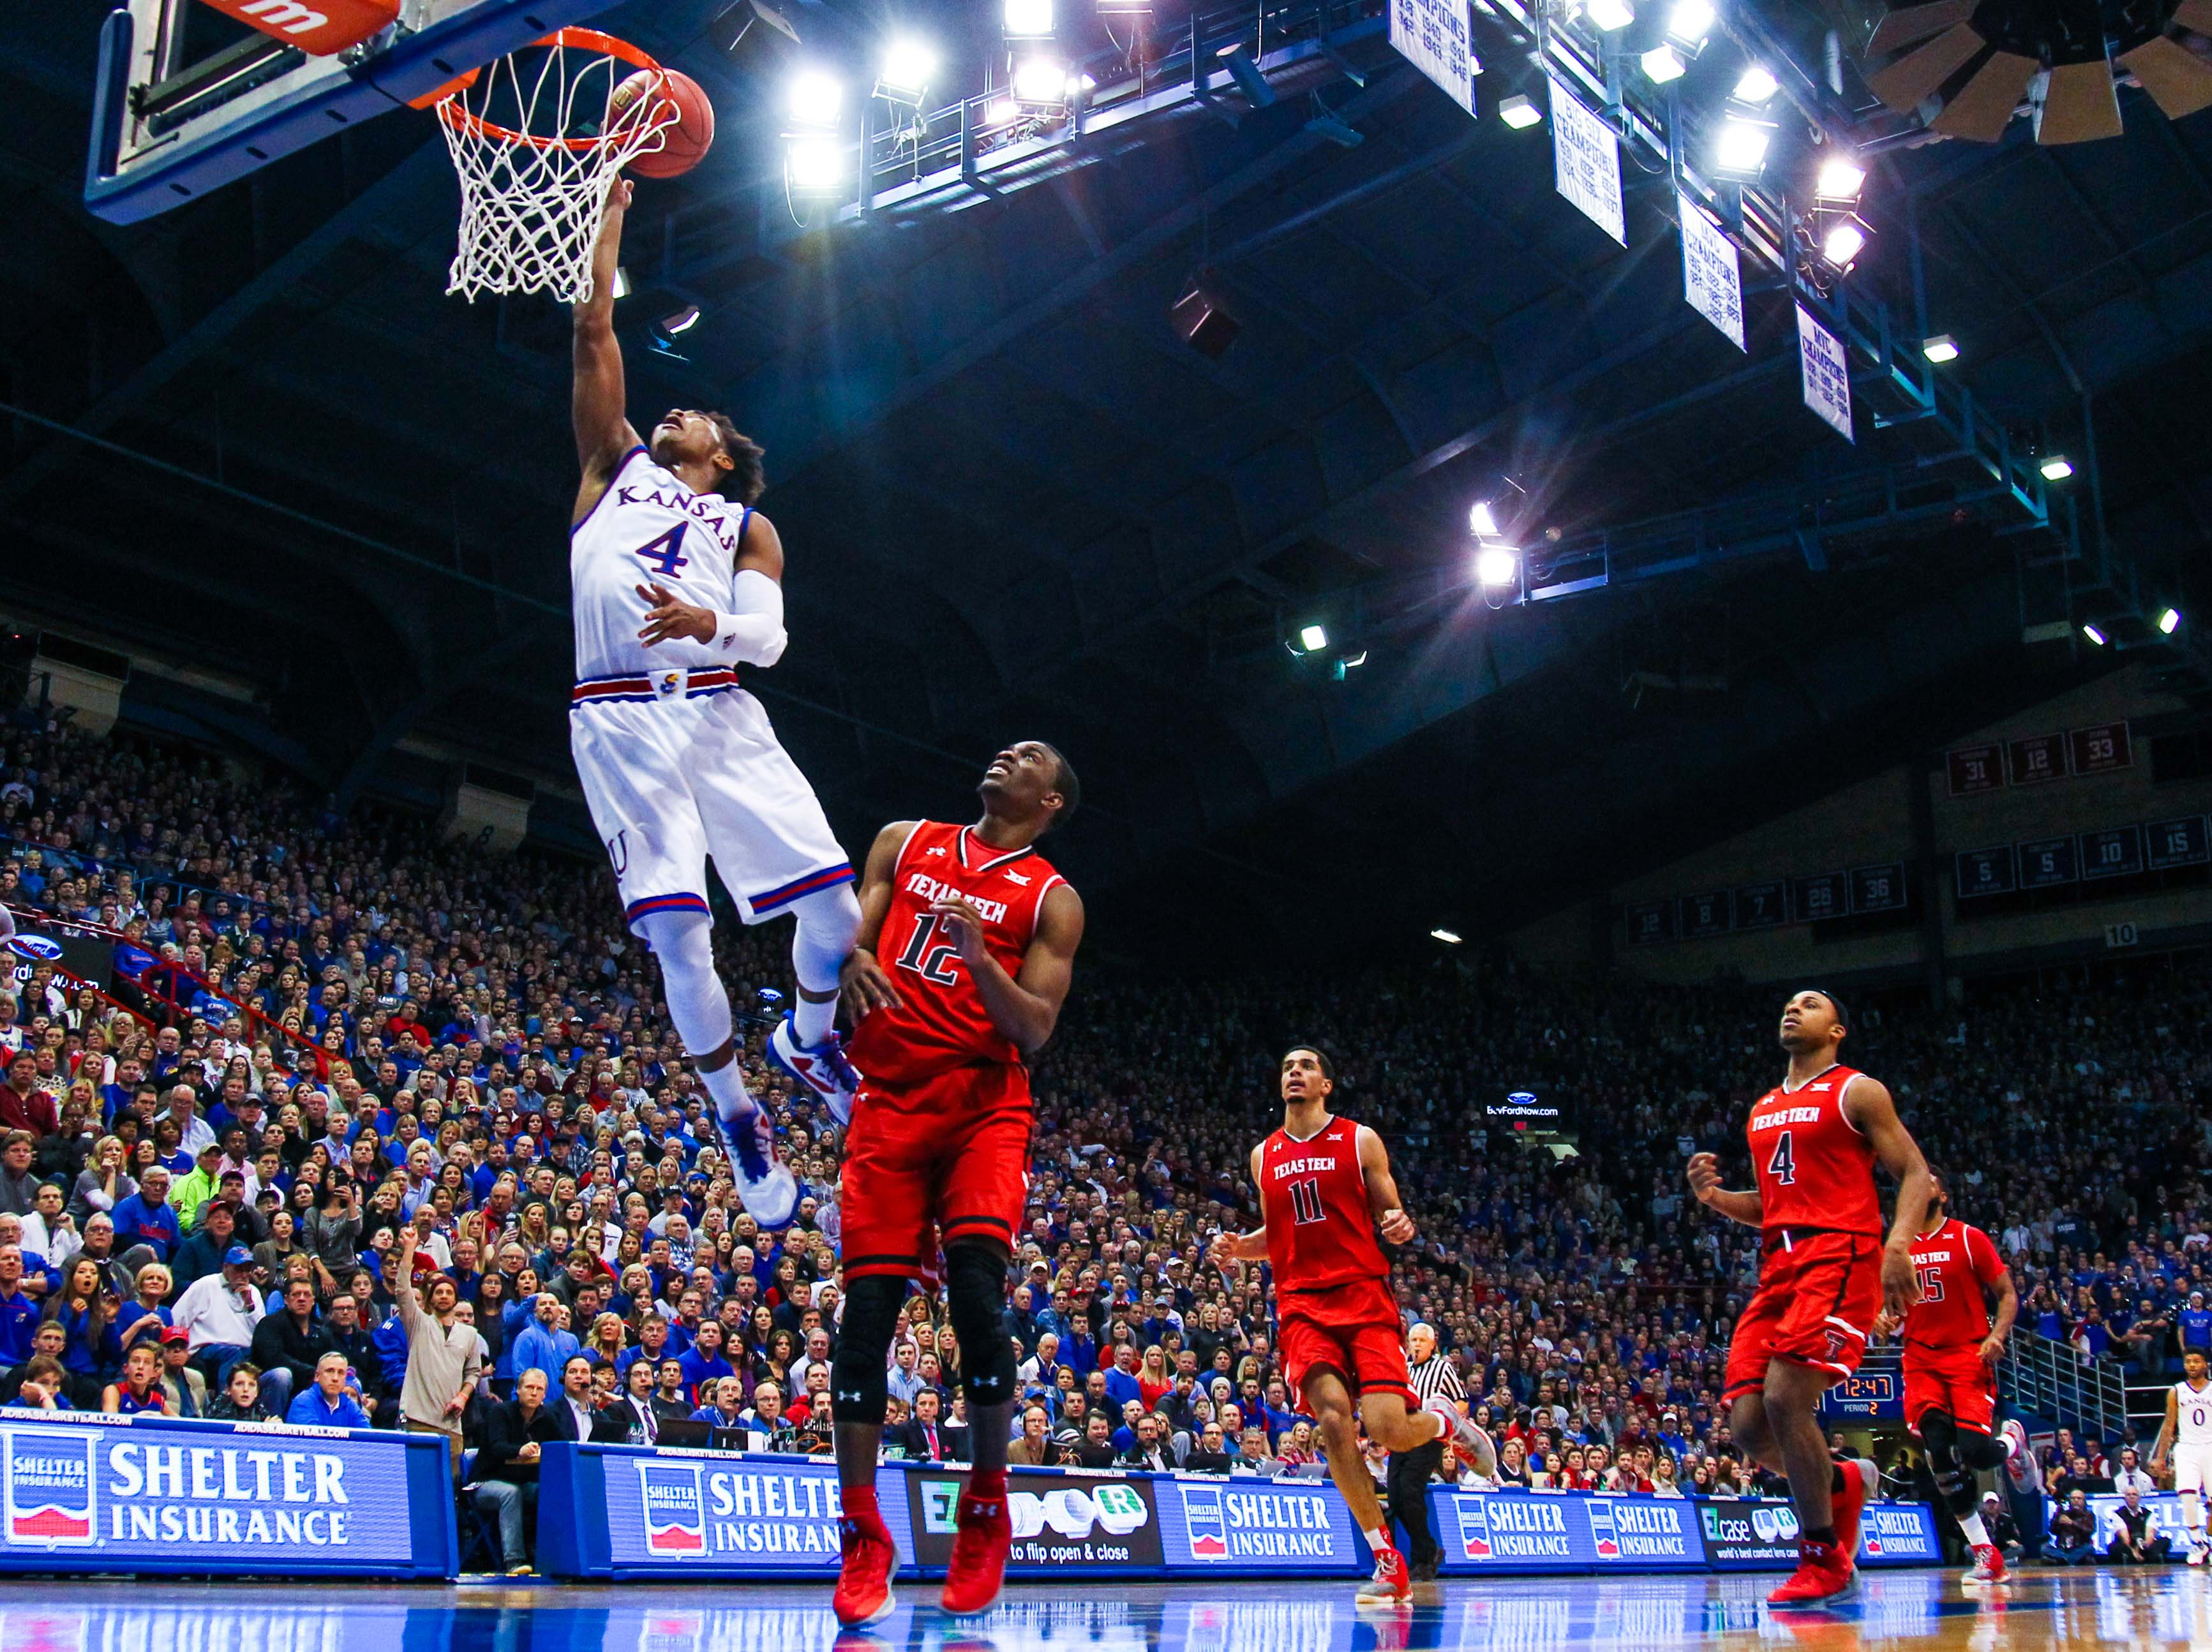 Jan 7, 2017; Lawrence, KS, USA;  Kansas Jayhawks guard Devonte' Graham (4) shoots a lay up as Texas Tech Red Raiders guard Keenan Evans (12) defends during the second half at Allen Fieldhouse. The Jayhawks won 85-68. Mandatory Credit: Jay Biggerstaff-USA TODAY Sports